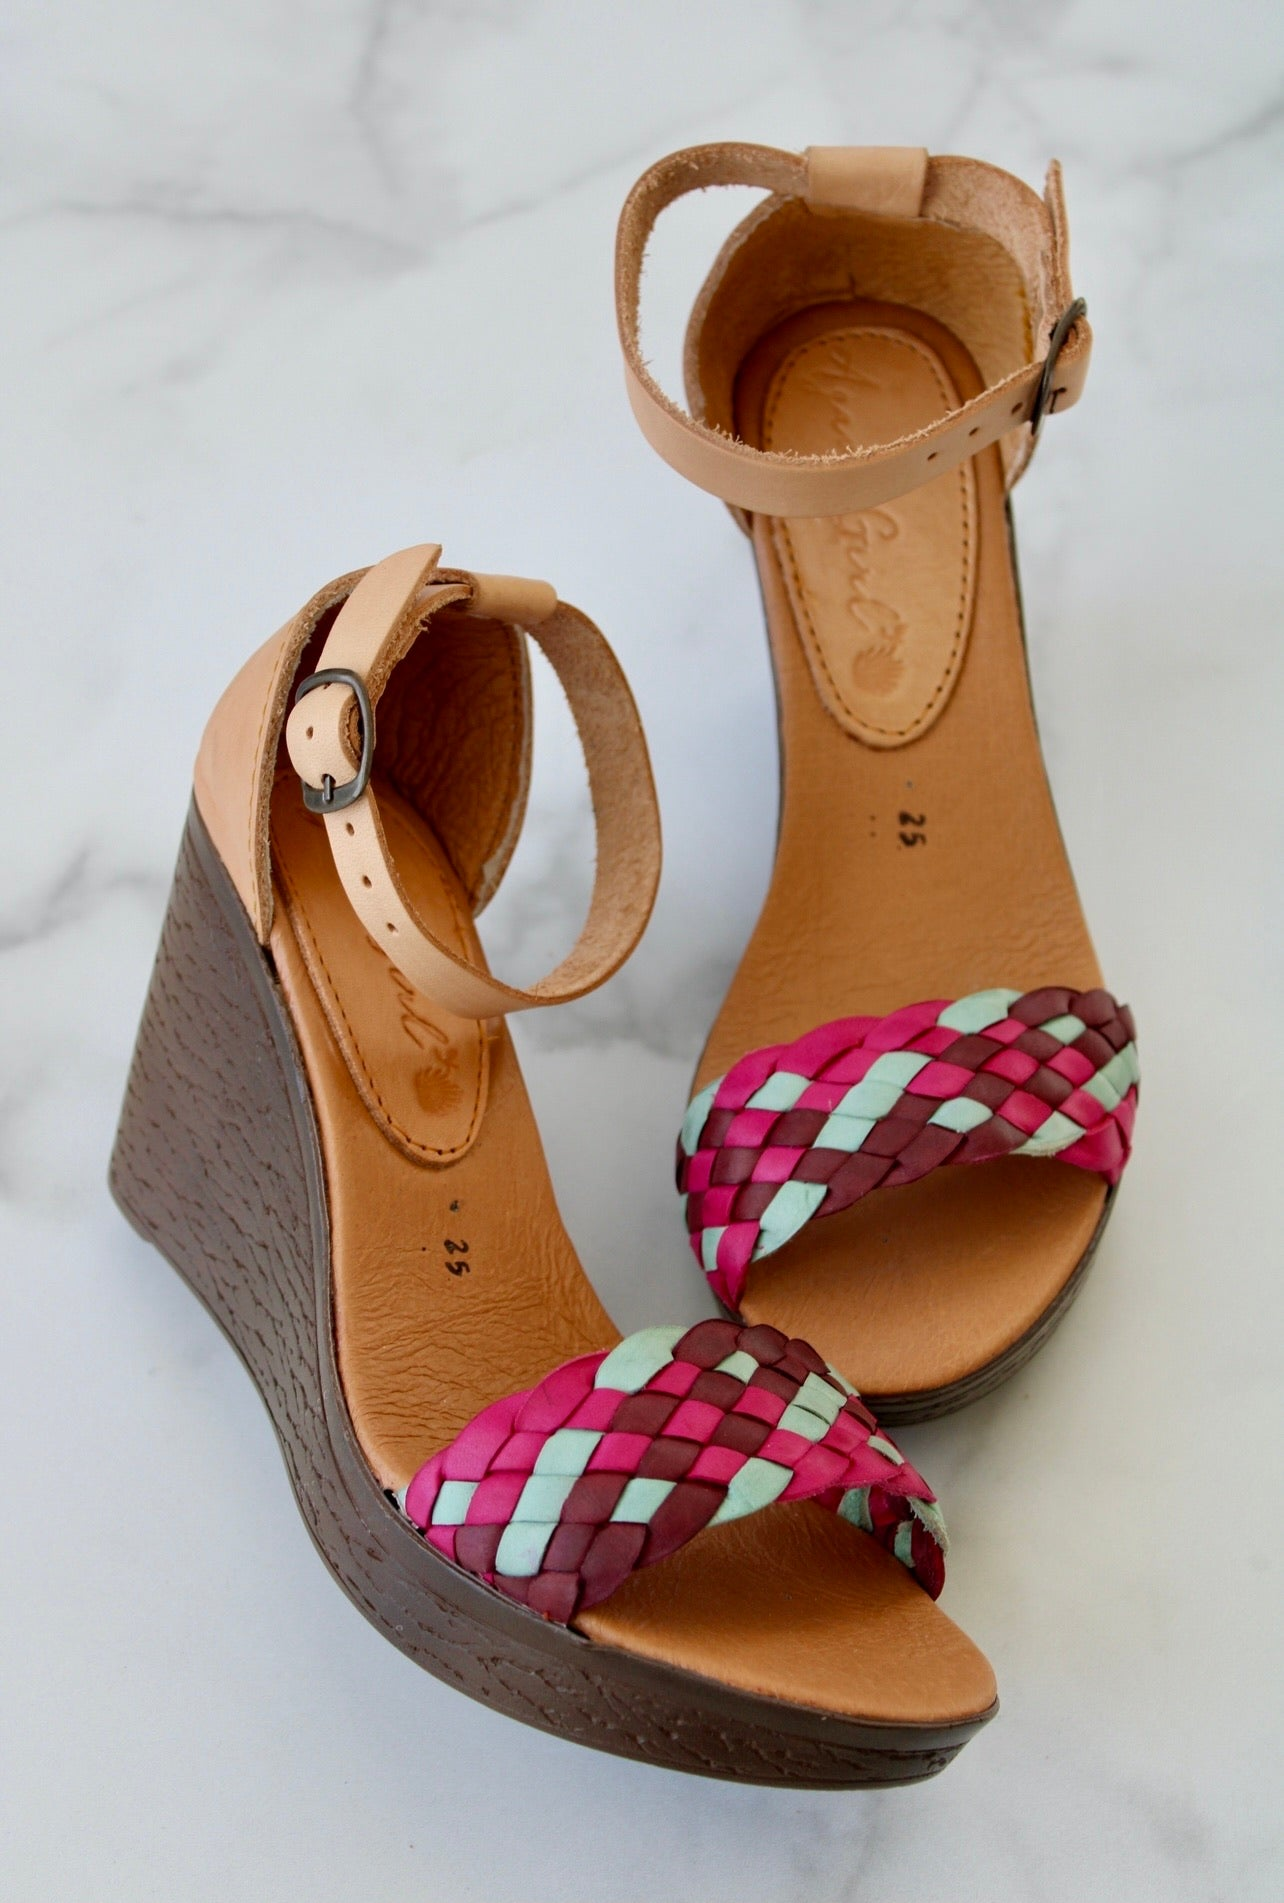 Verano Wedges - Mint & Pink